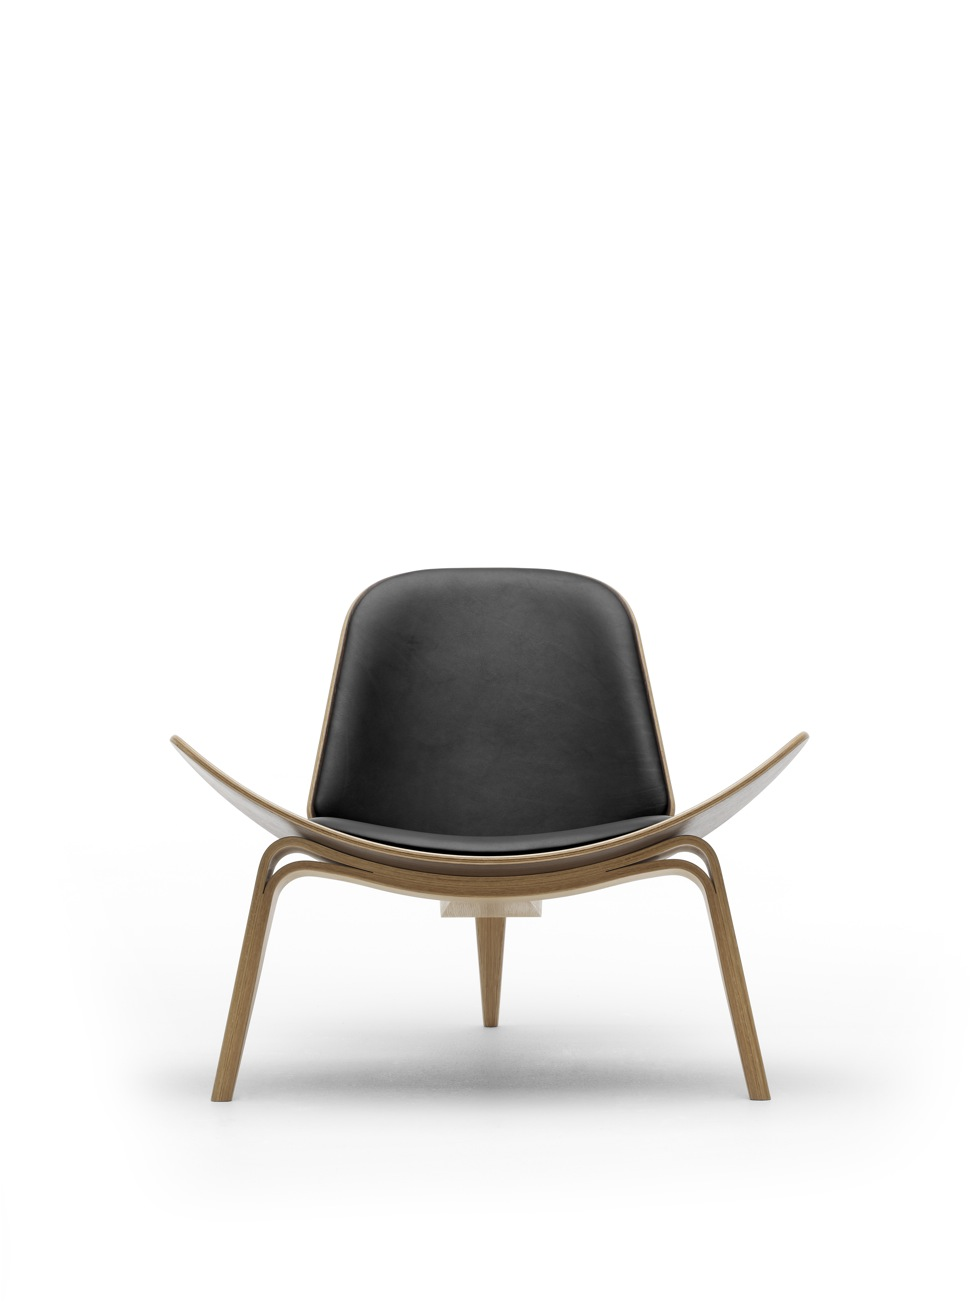 le fauteuil lounge ch07 de hans j wegner guten morgwen. Black Bedroom Furniture Sets. Home Design Ideas